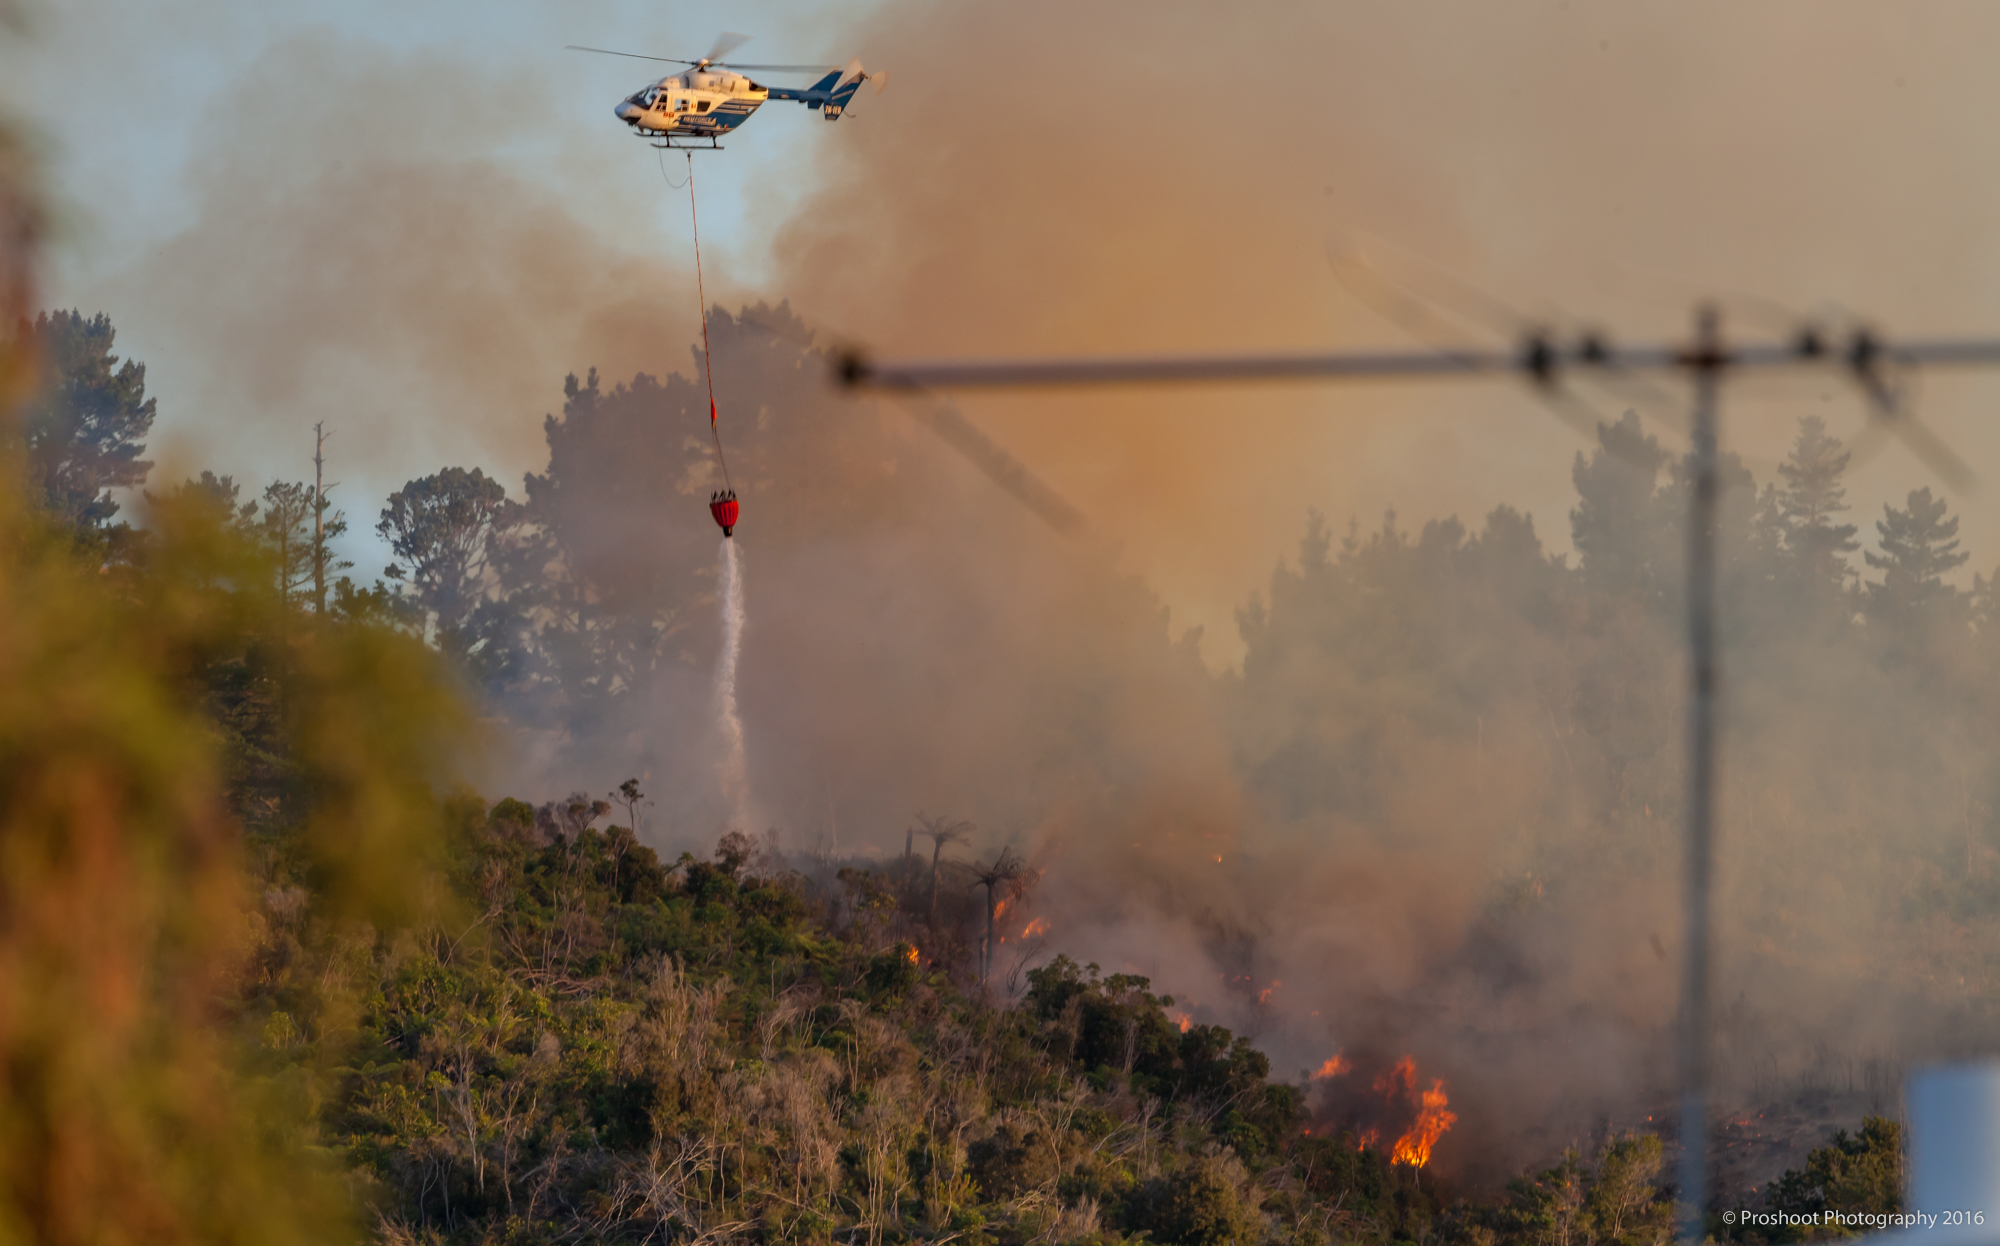 Upper Hutt Scrub Fire Images 5640